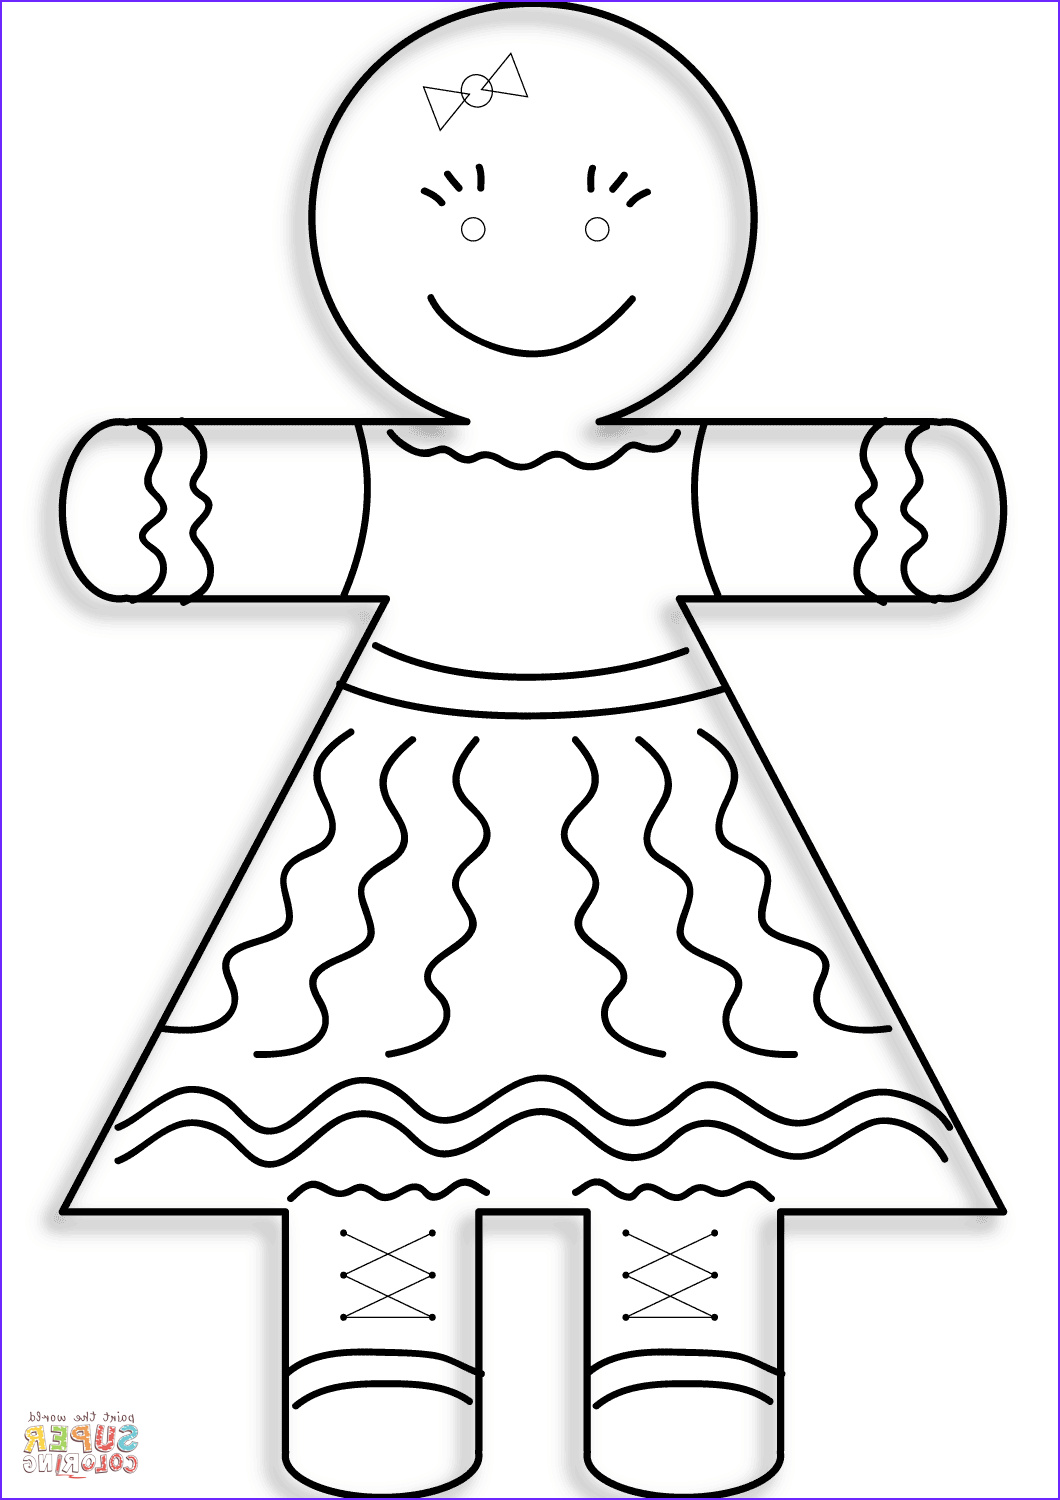 Gingerbread Coloring Page Elegant Gallery Gingerbread Girl Coloring Page